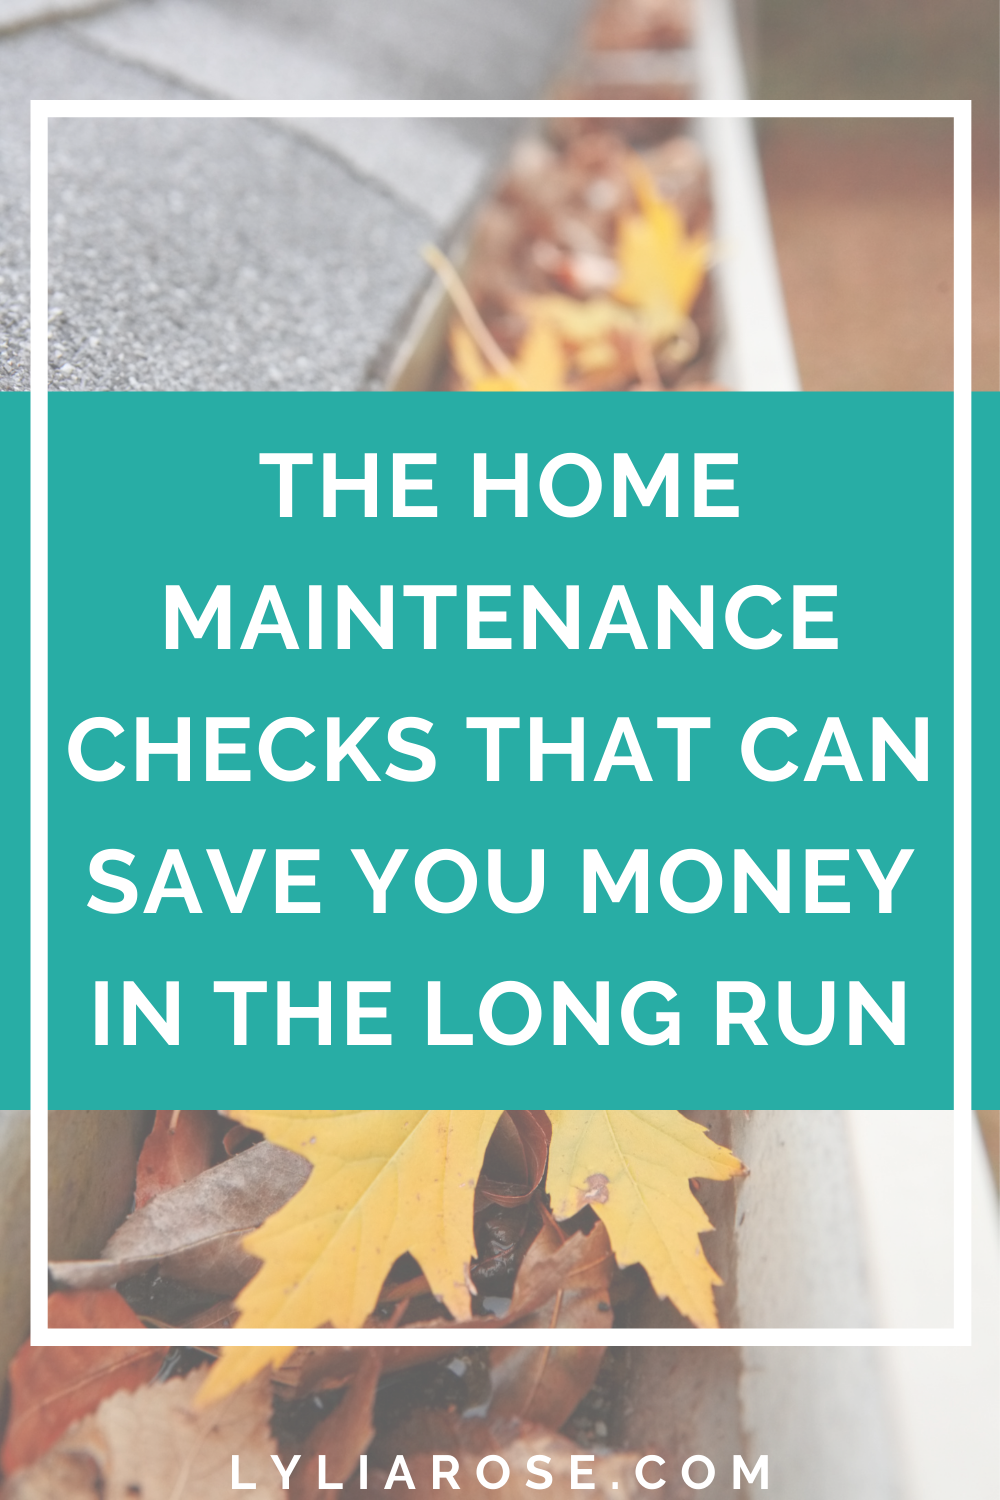 The home maintenance checks that can save you money in the long run